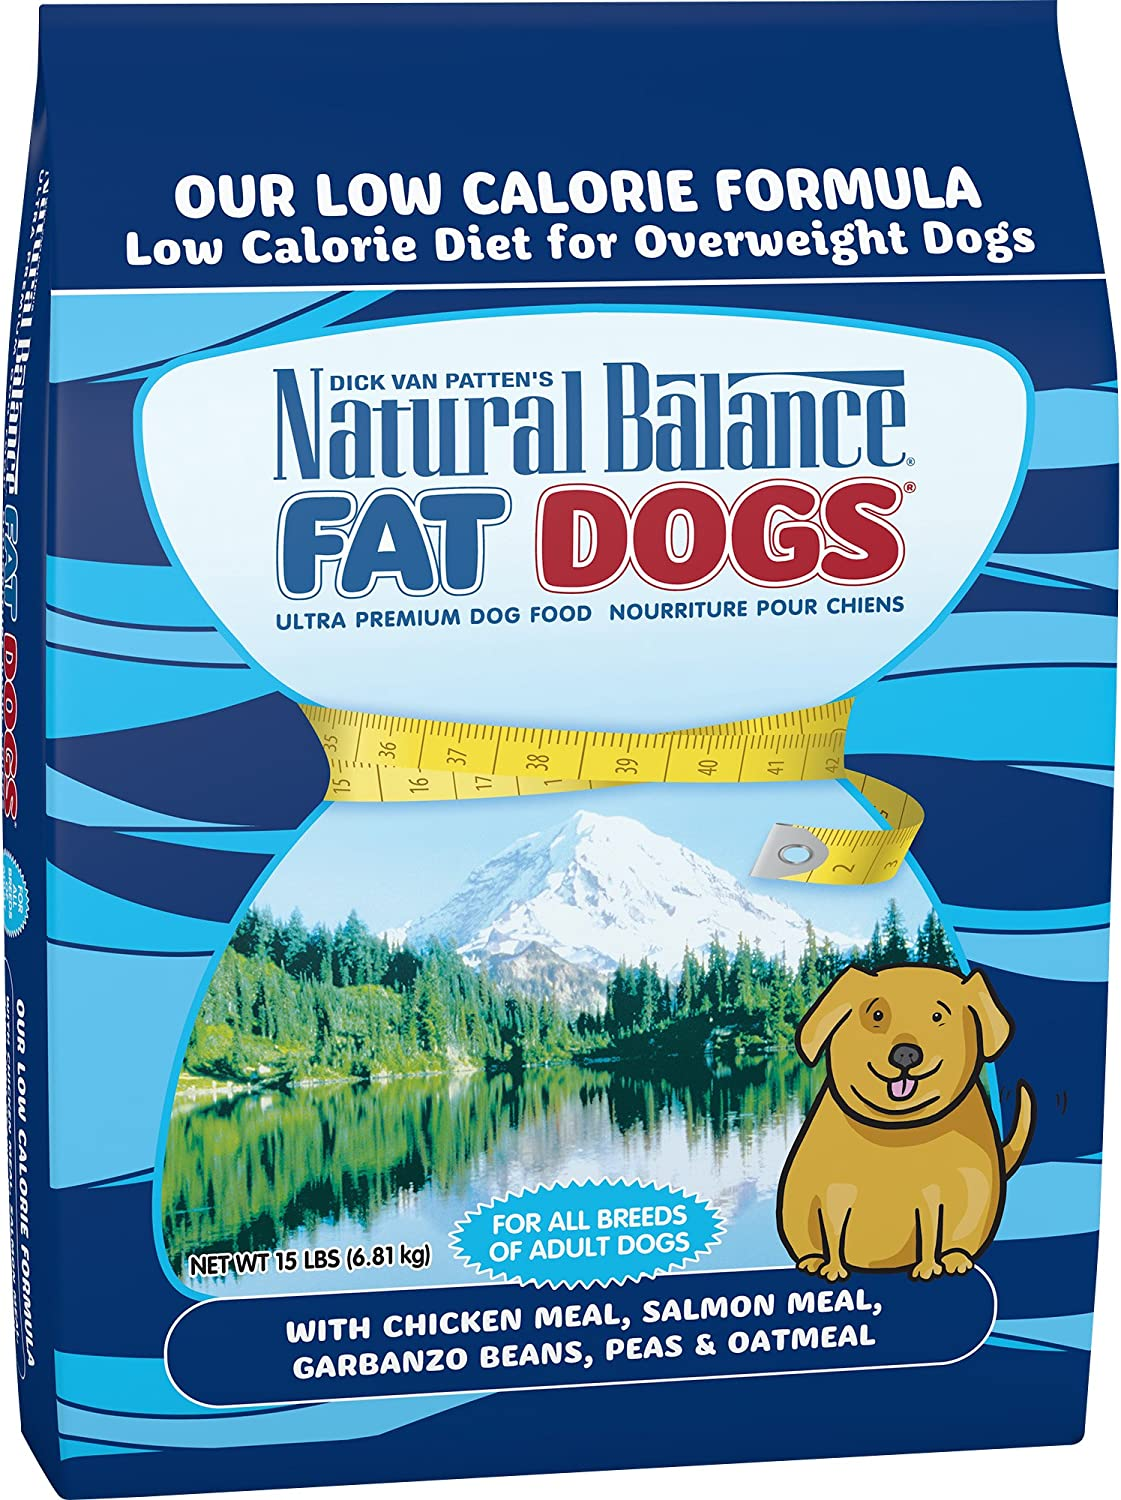 Natural Balance Fat Dogs Low Calorie Dry Dog Food, 15Pound